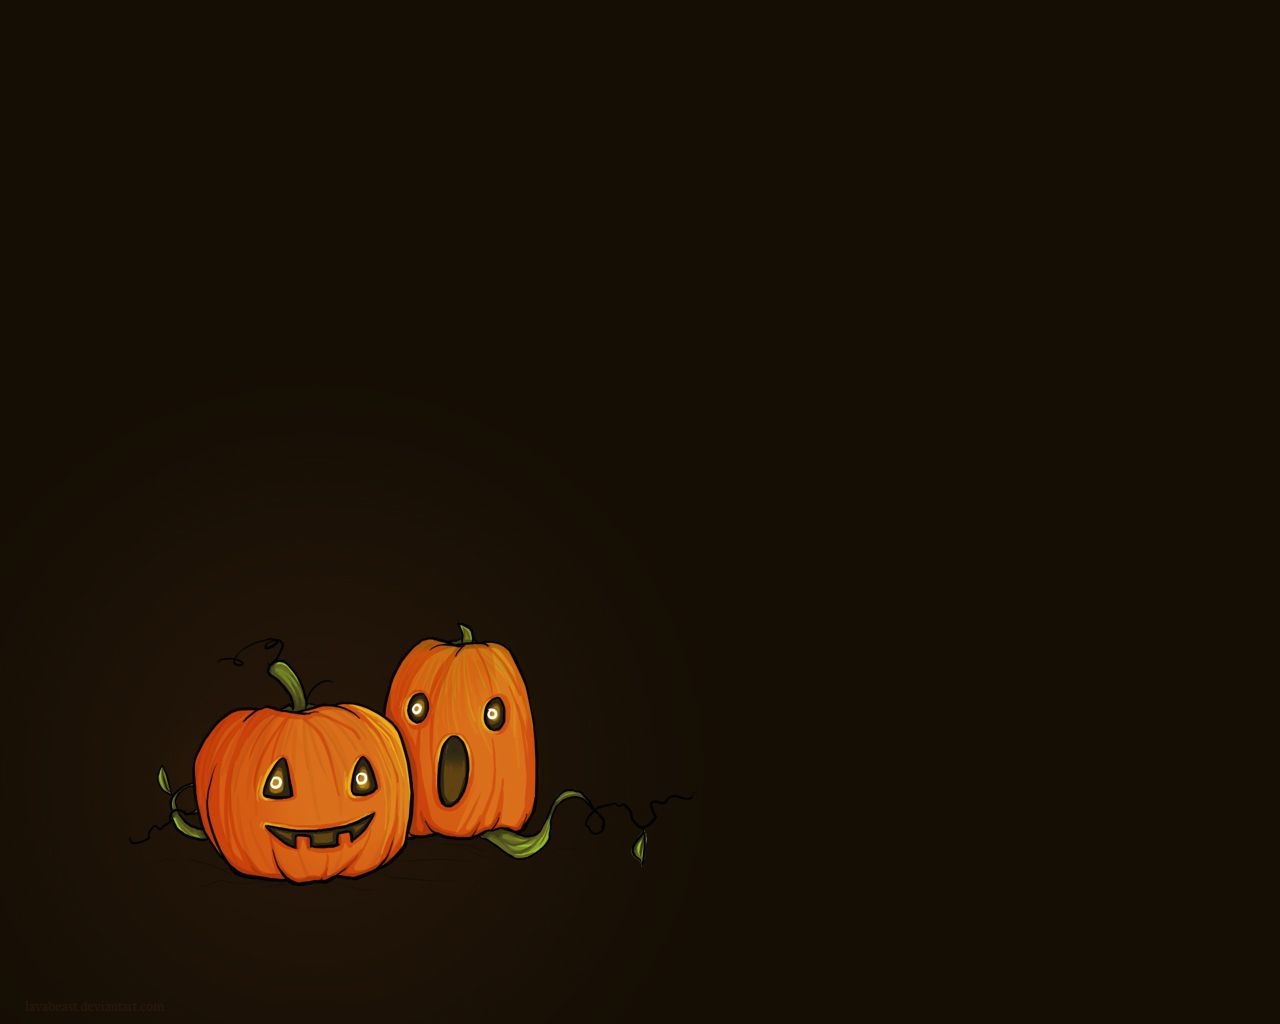 Download 50 Cute And Happy Halloween Wallpapers Hd For Free Halloween Wallpaper Halloween Desktop Wallpaper Happy Halloween